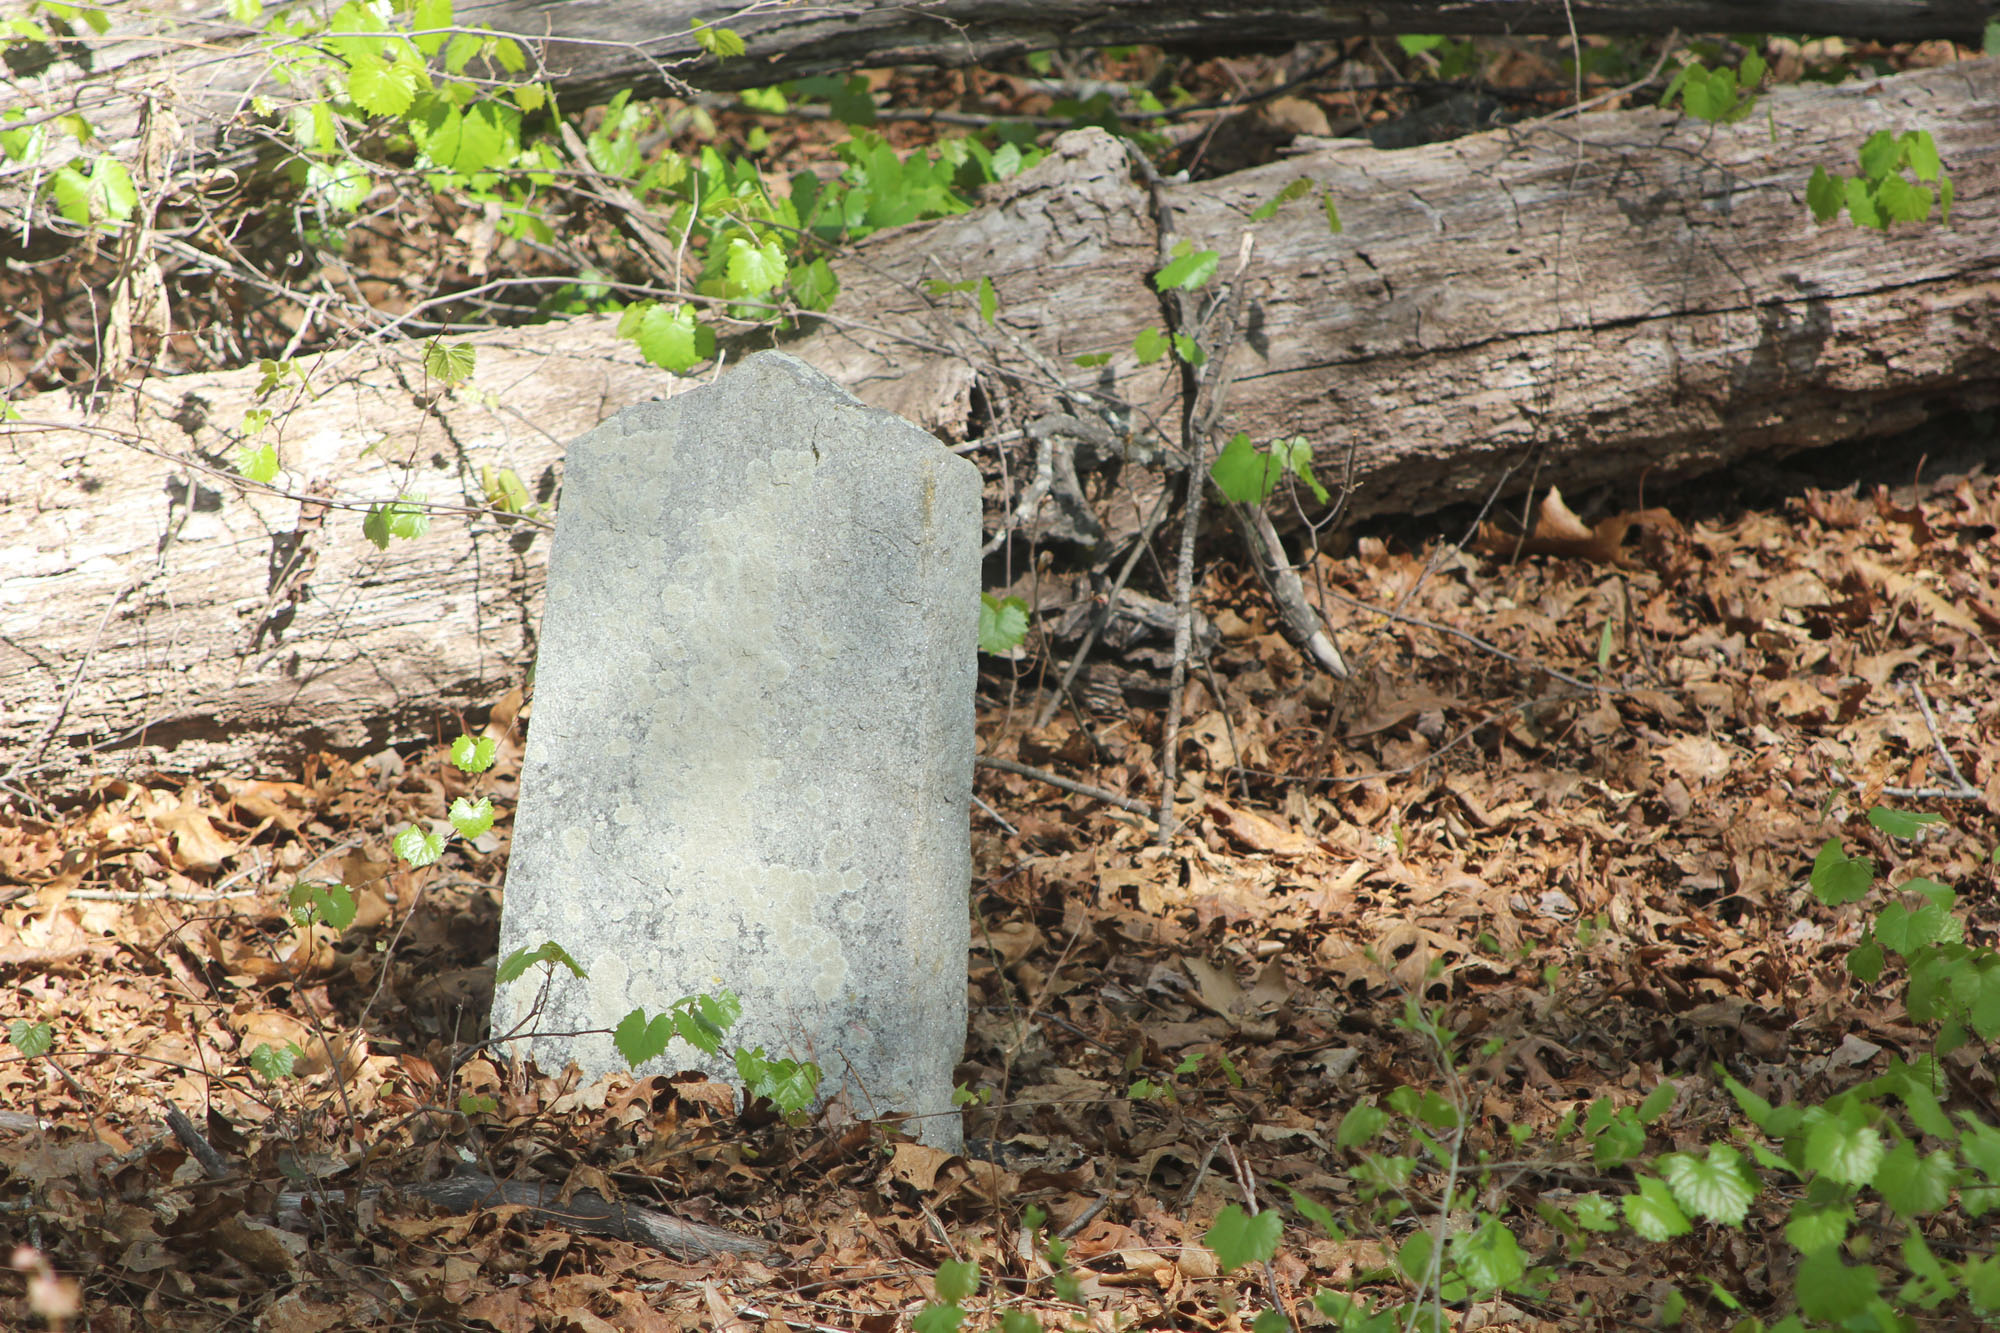 Mystery Grave in the Flat Rock Cemetery